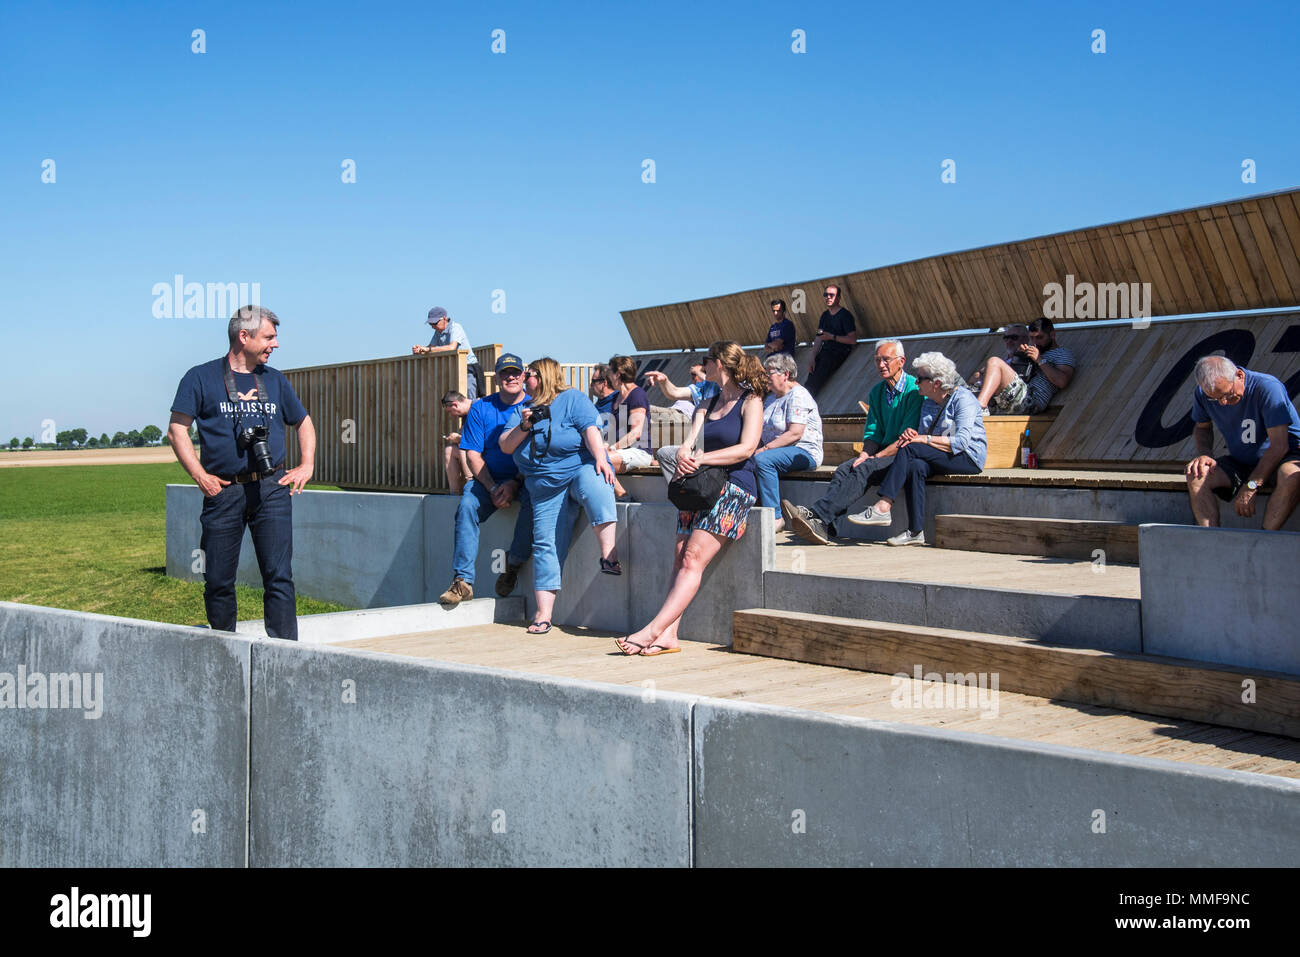 Plane spotters on aircraft spotting platform waiting for airplanes taking off from runway at Brussels Airport, Zaventem, Belgium - Stock Image